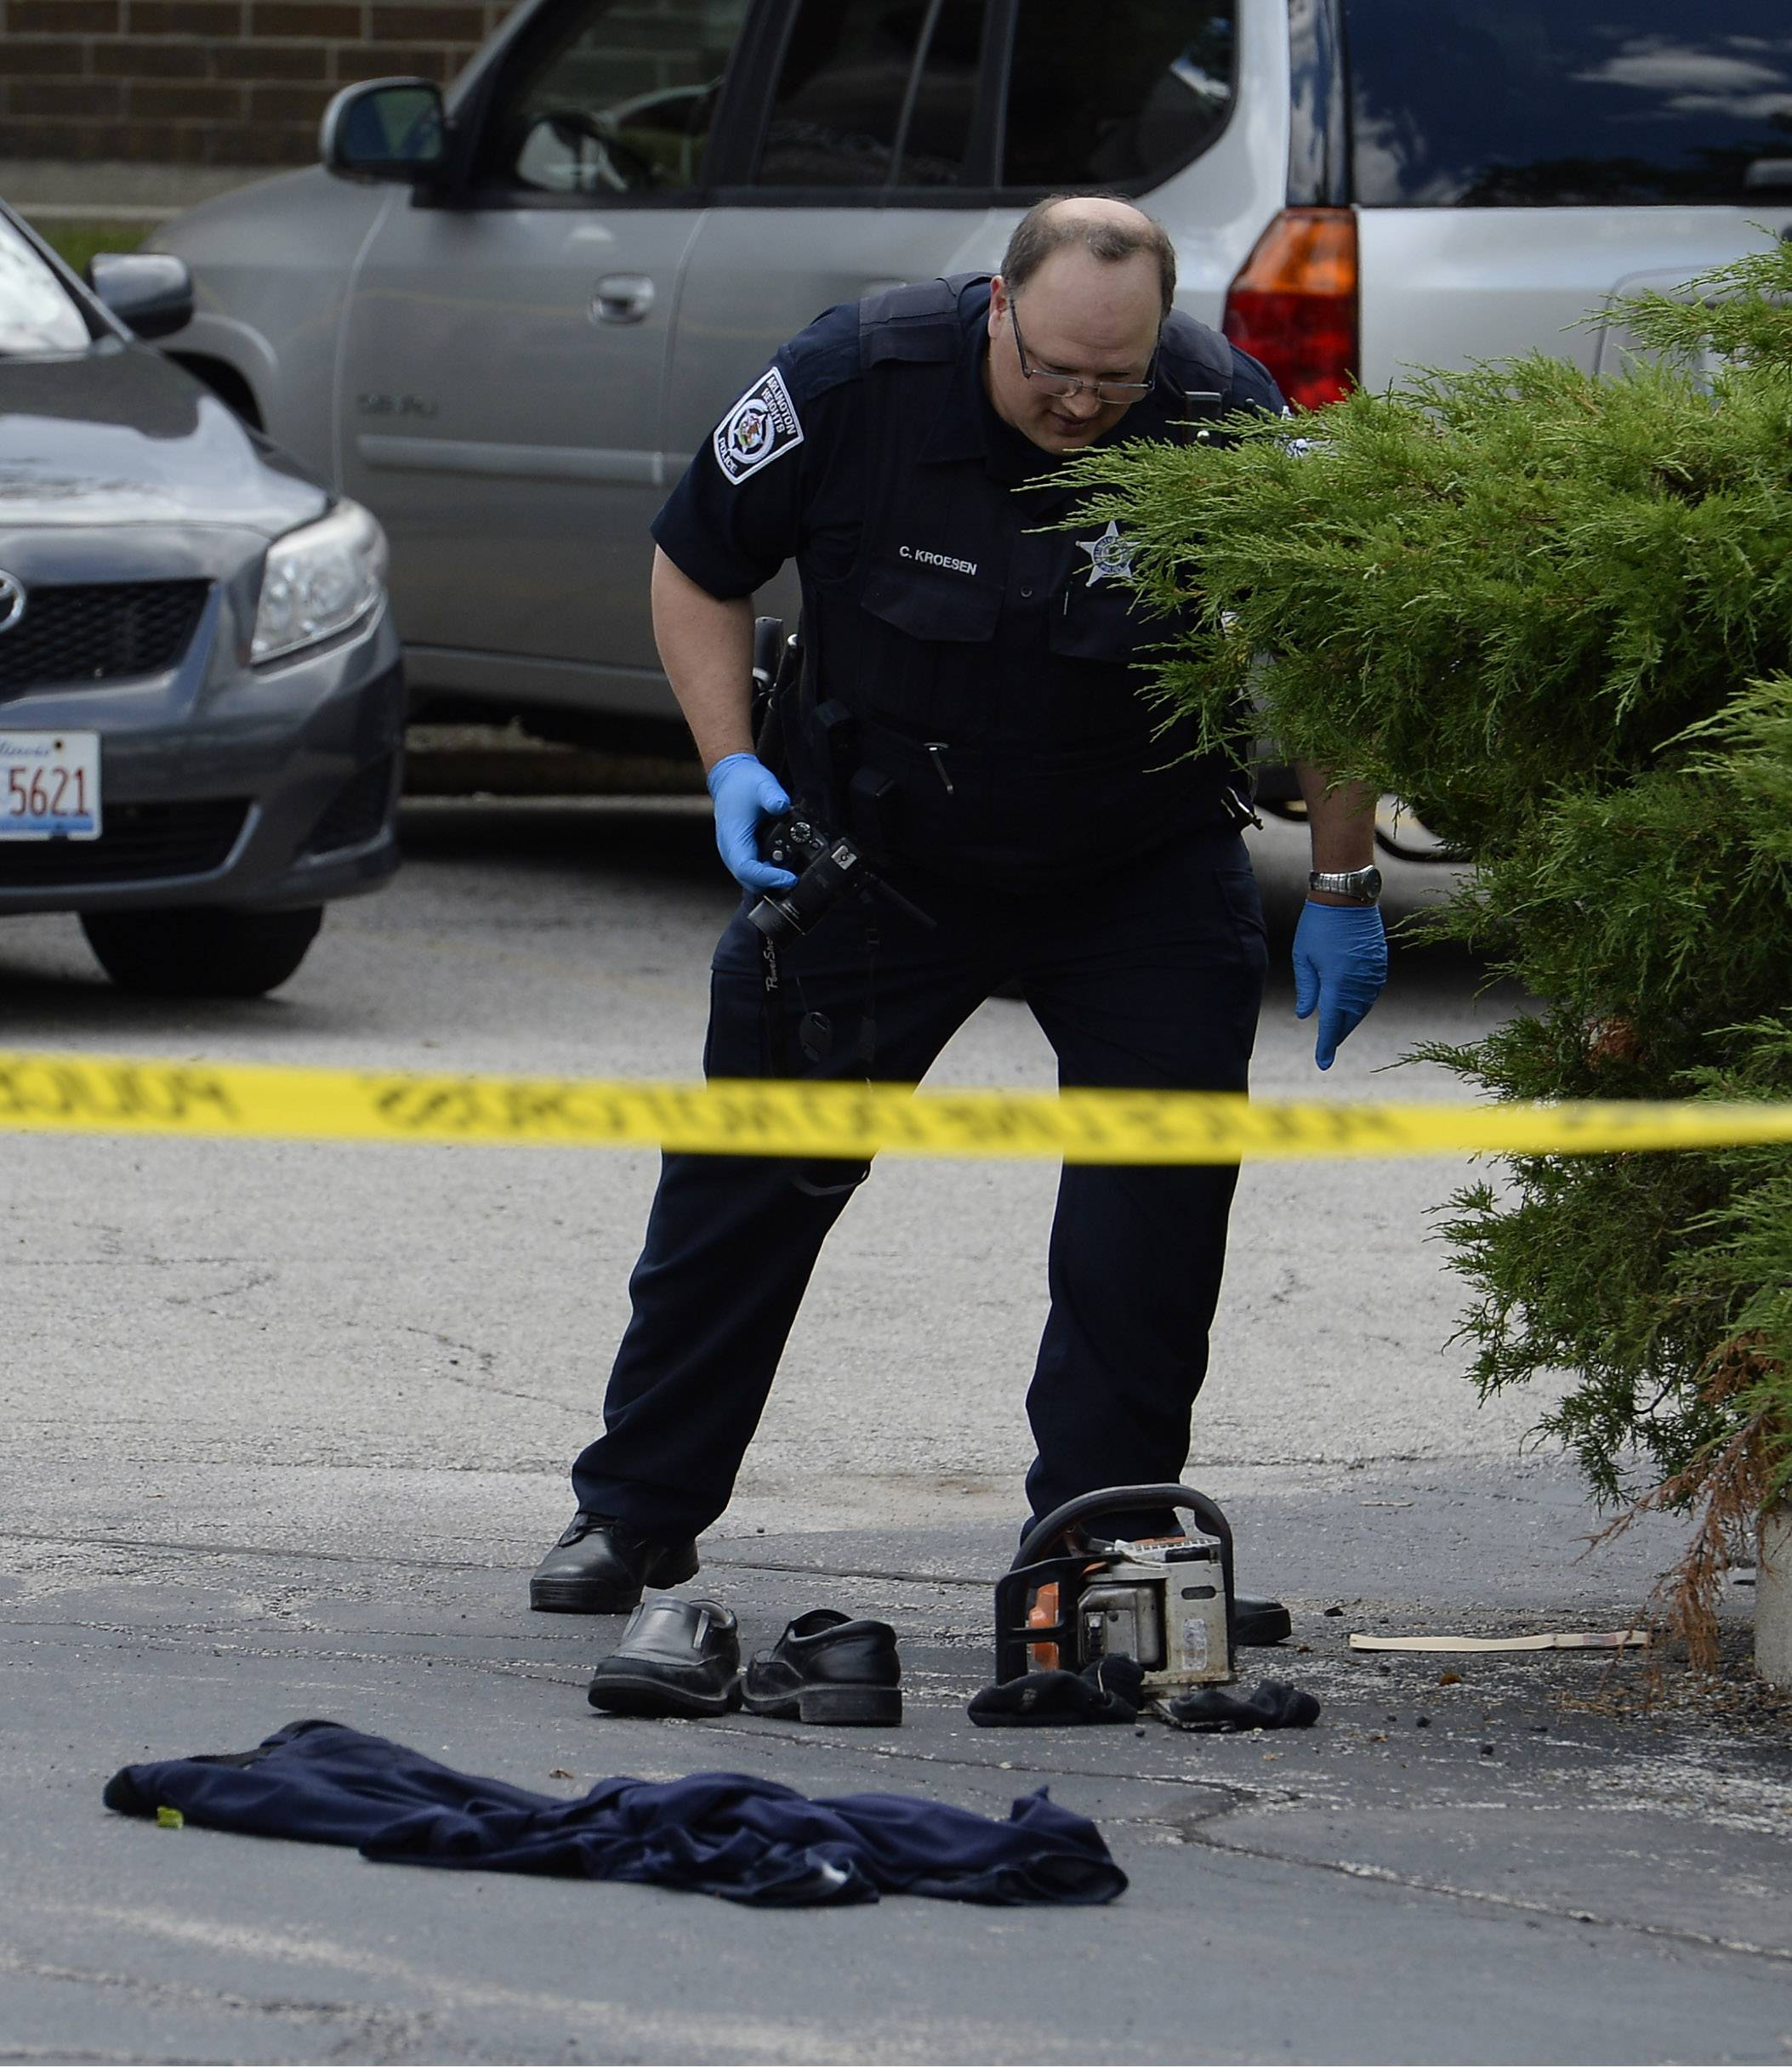 Arlington Heights police gather evidence, bloody clothes and a chain saw after a domestic case turned violent in Arlington Heights on Monday.